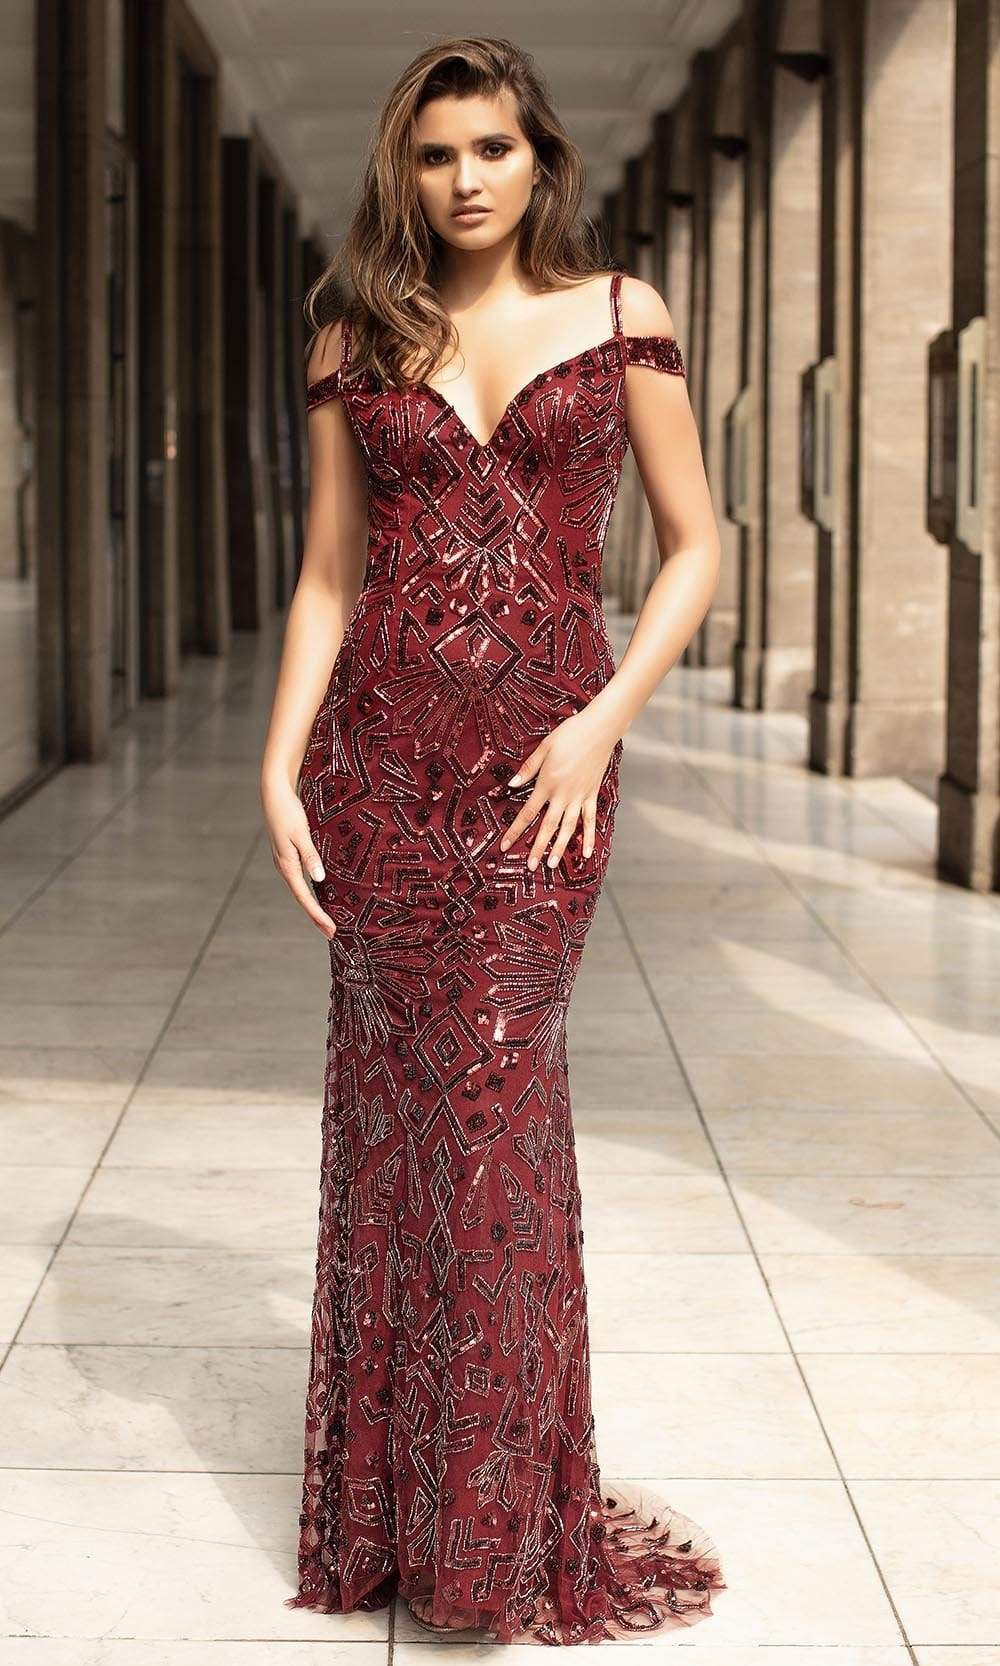 Chic and Holland - AN1455 Sequin Off Shoulder Sheath Dress from Chic and Holland